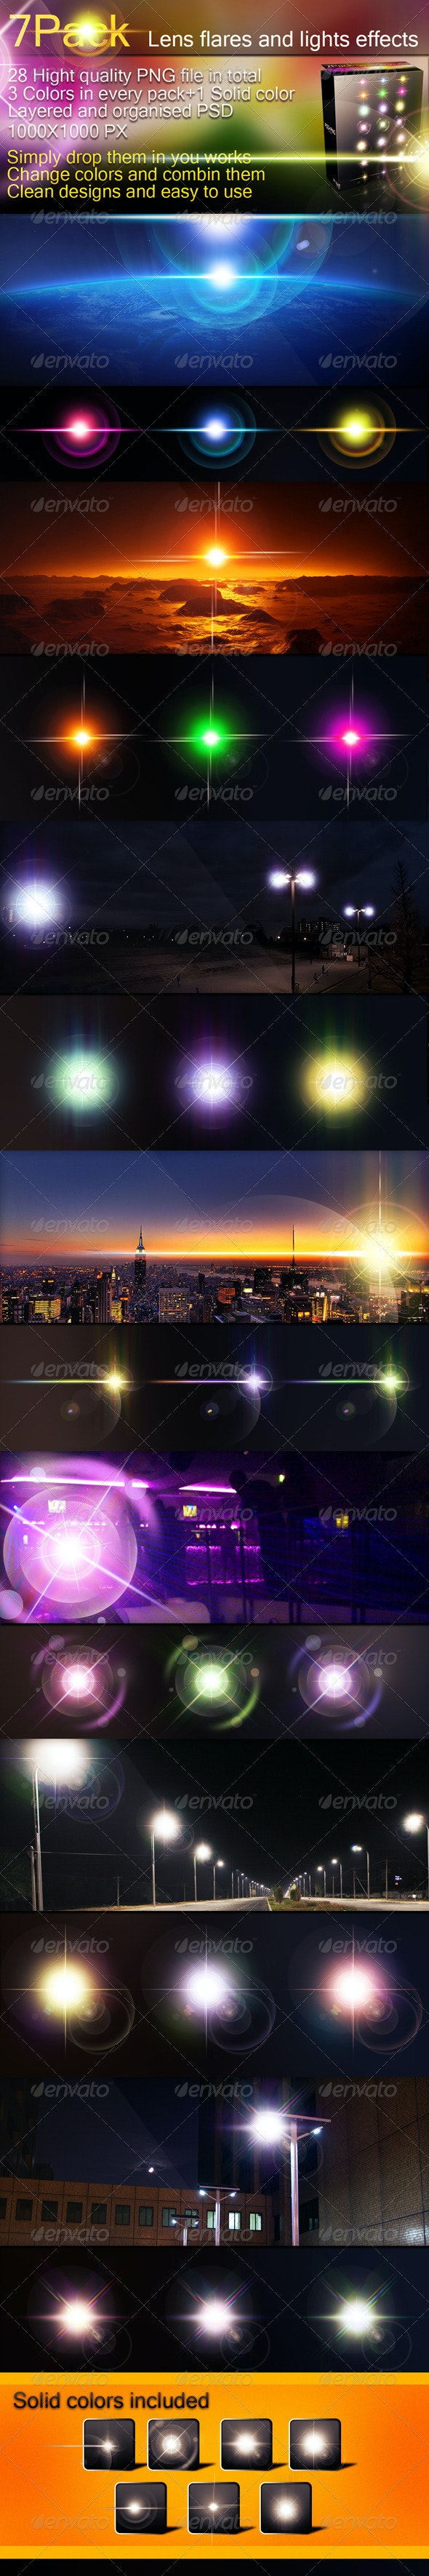 7 packs-Lens Flares and Light Effects - Decorative Graphics